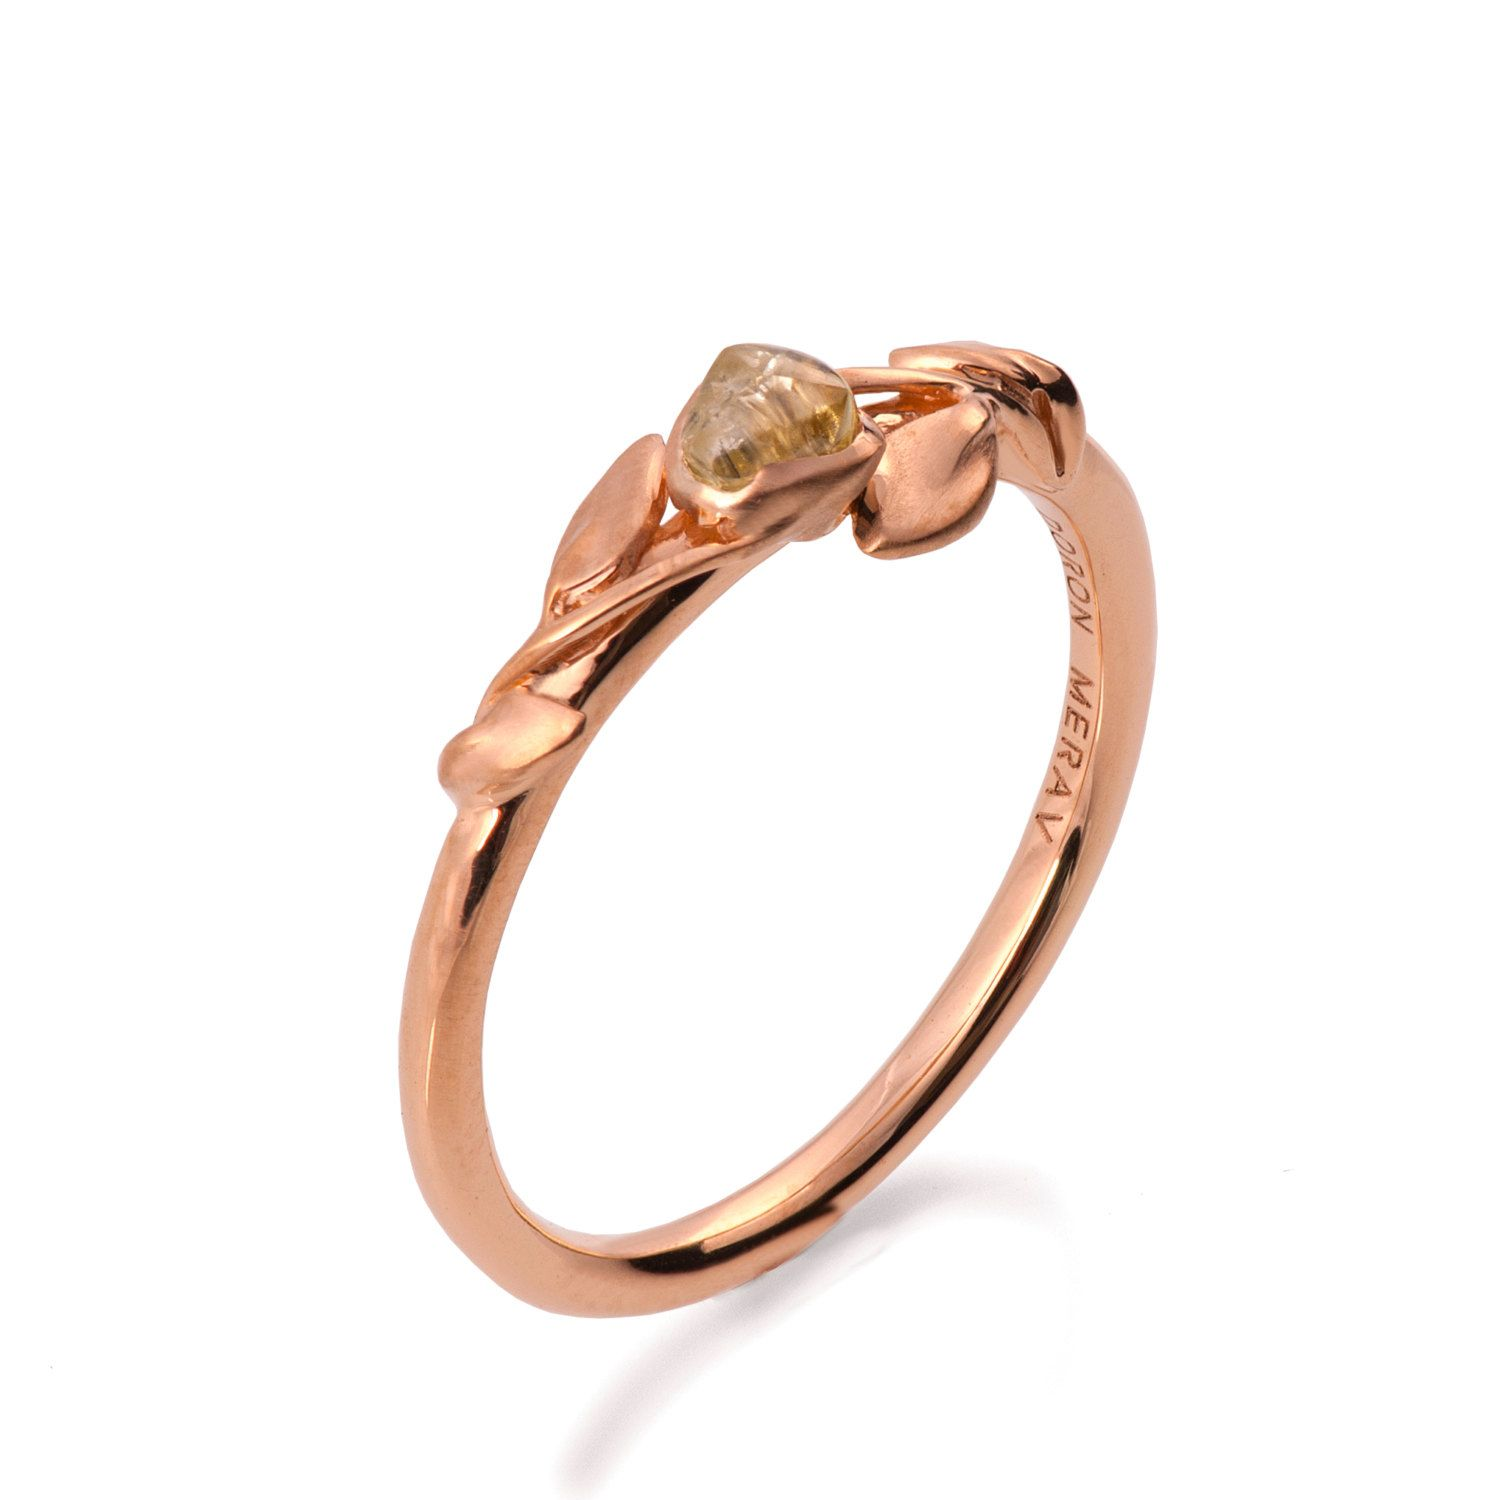 A handmade 18k rose gold ring set with a beautiful raw uncut